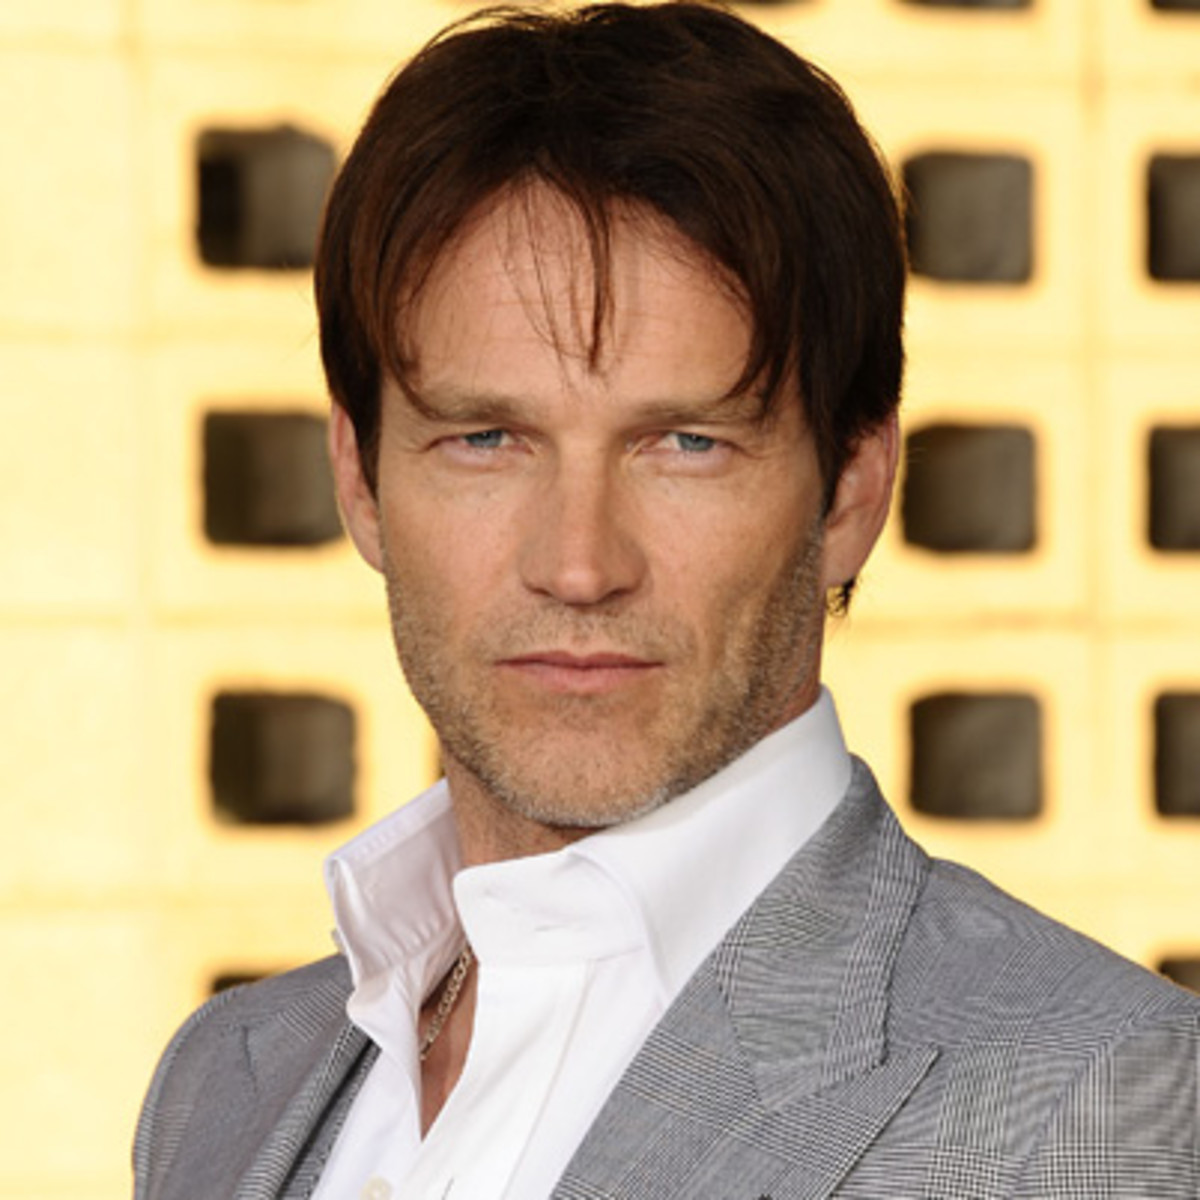 Stephen Moyer (born 1969)